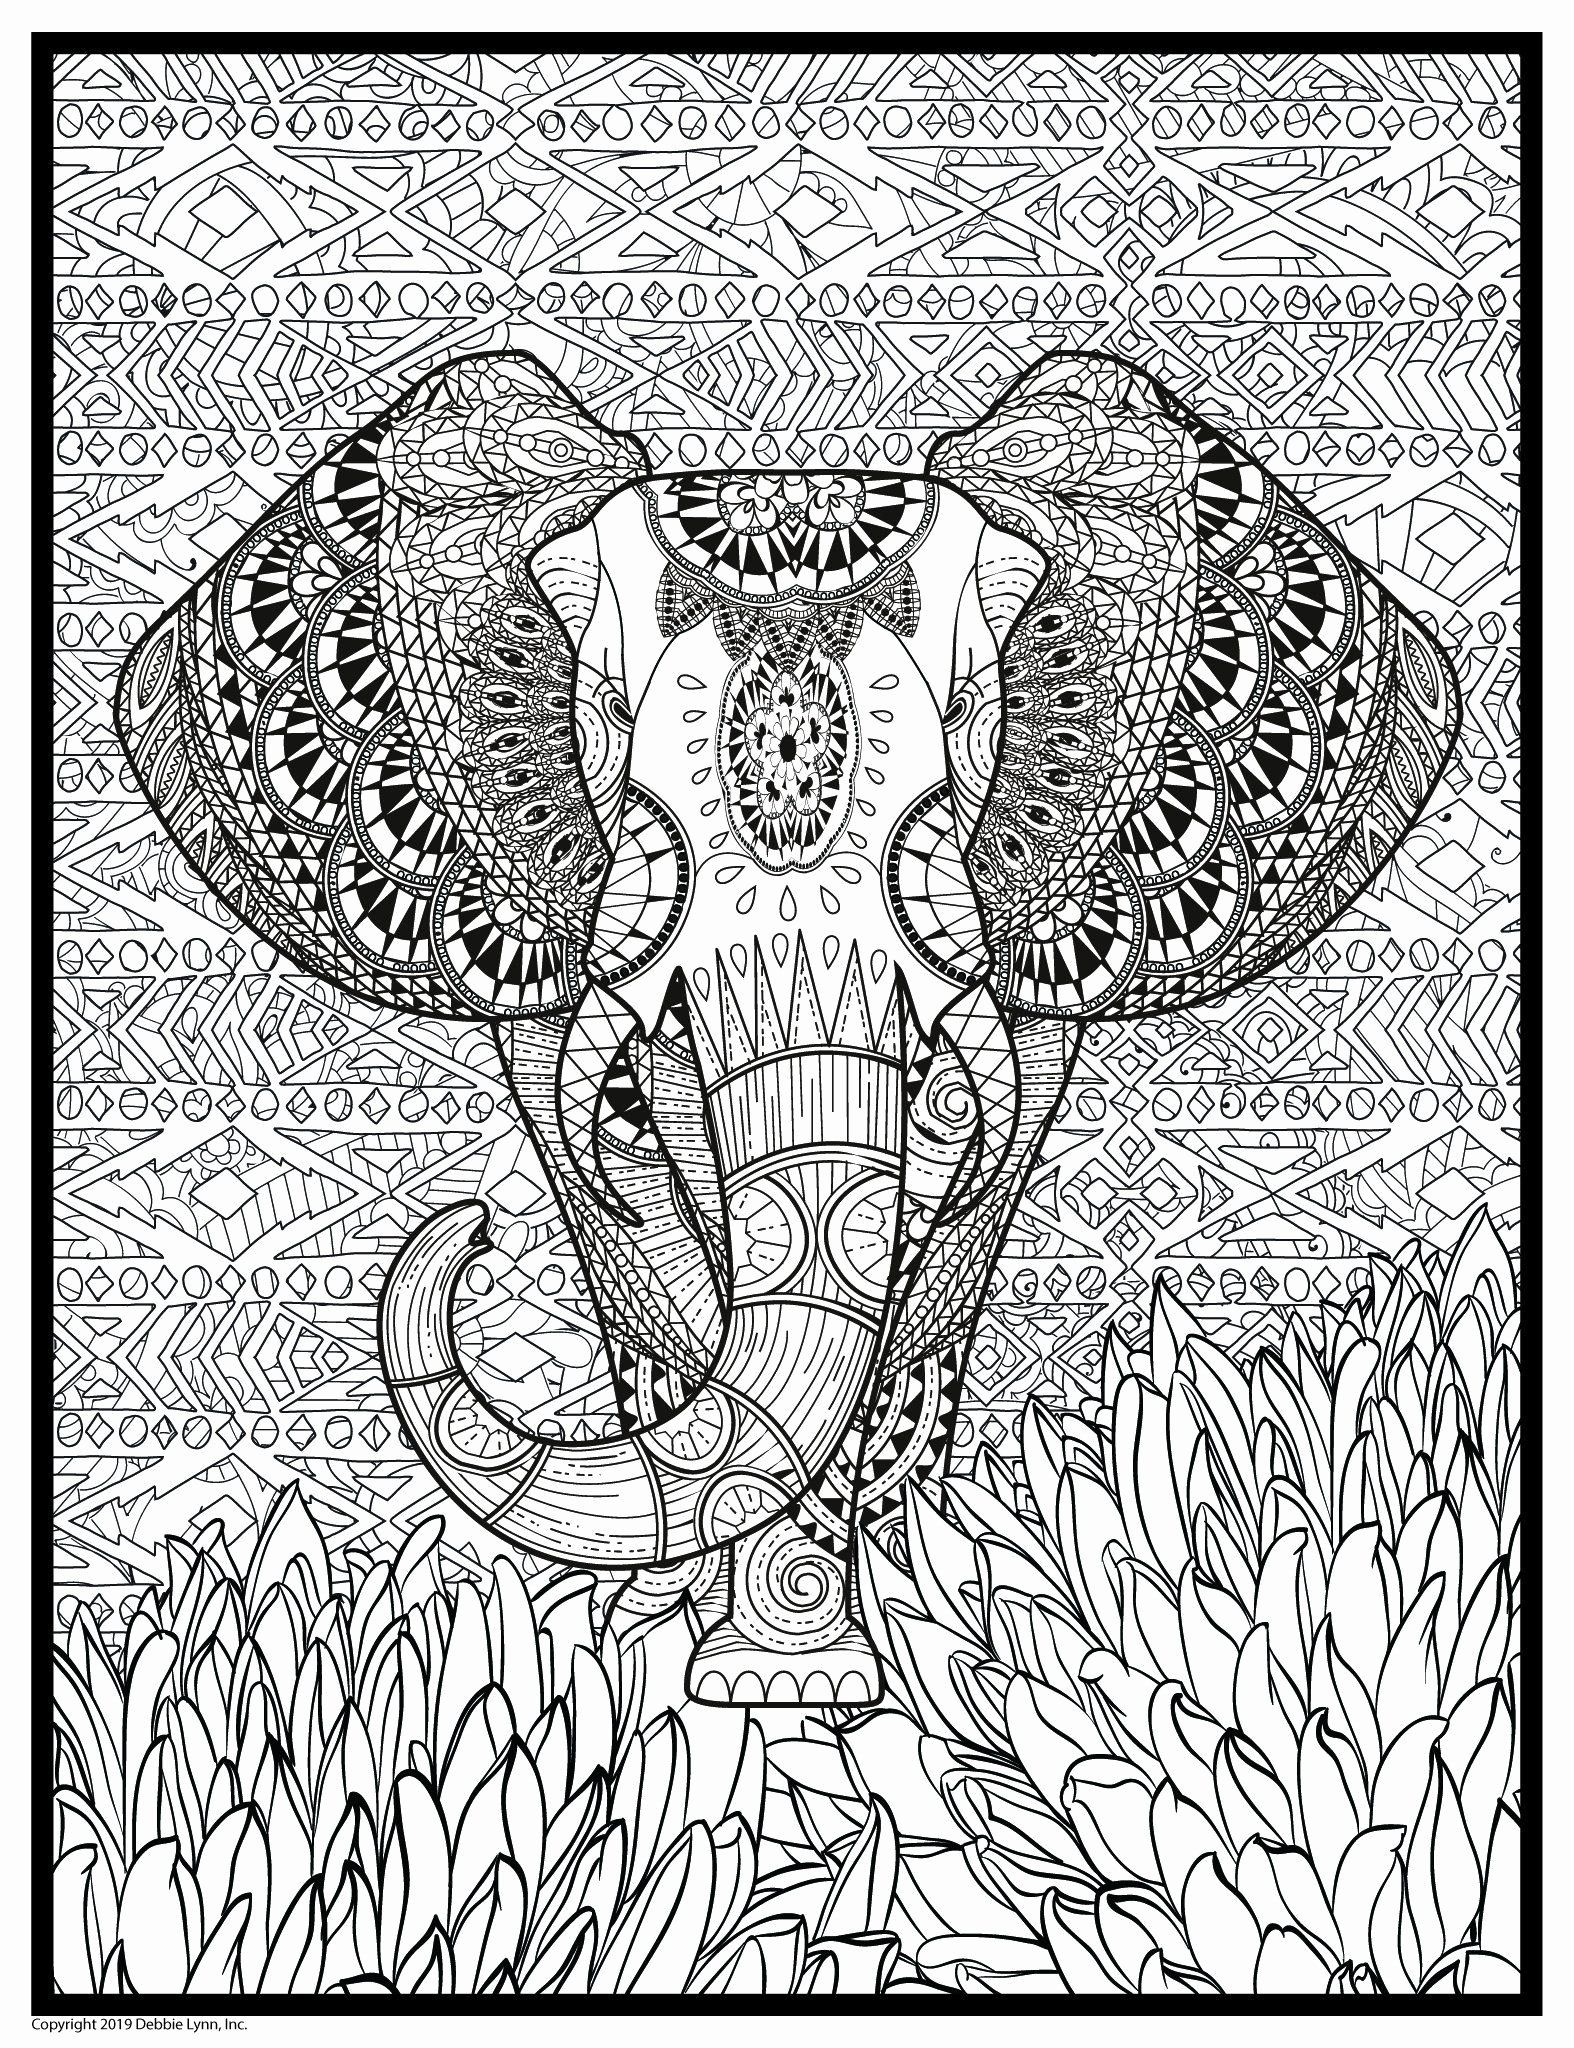 Super Tube Coloring Poster Inspirational Super Huge 48 X 63 Coloring Poster Coloring Posters Animal Coloring Books Elephant Coloring Page